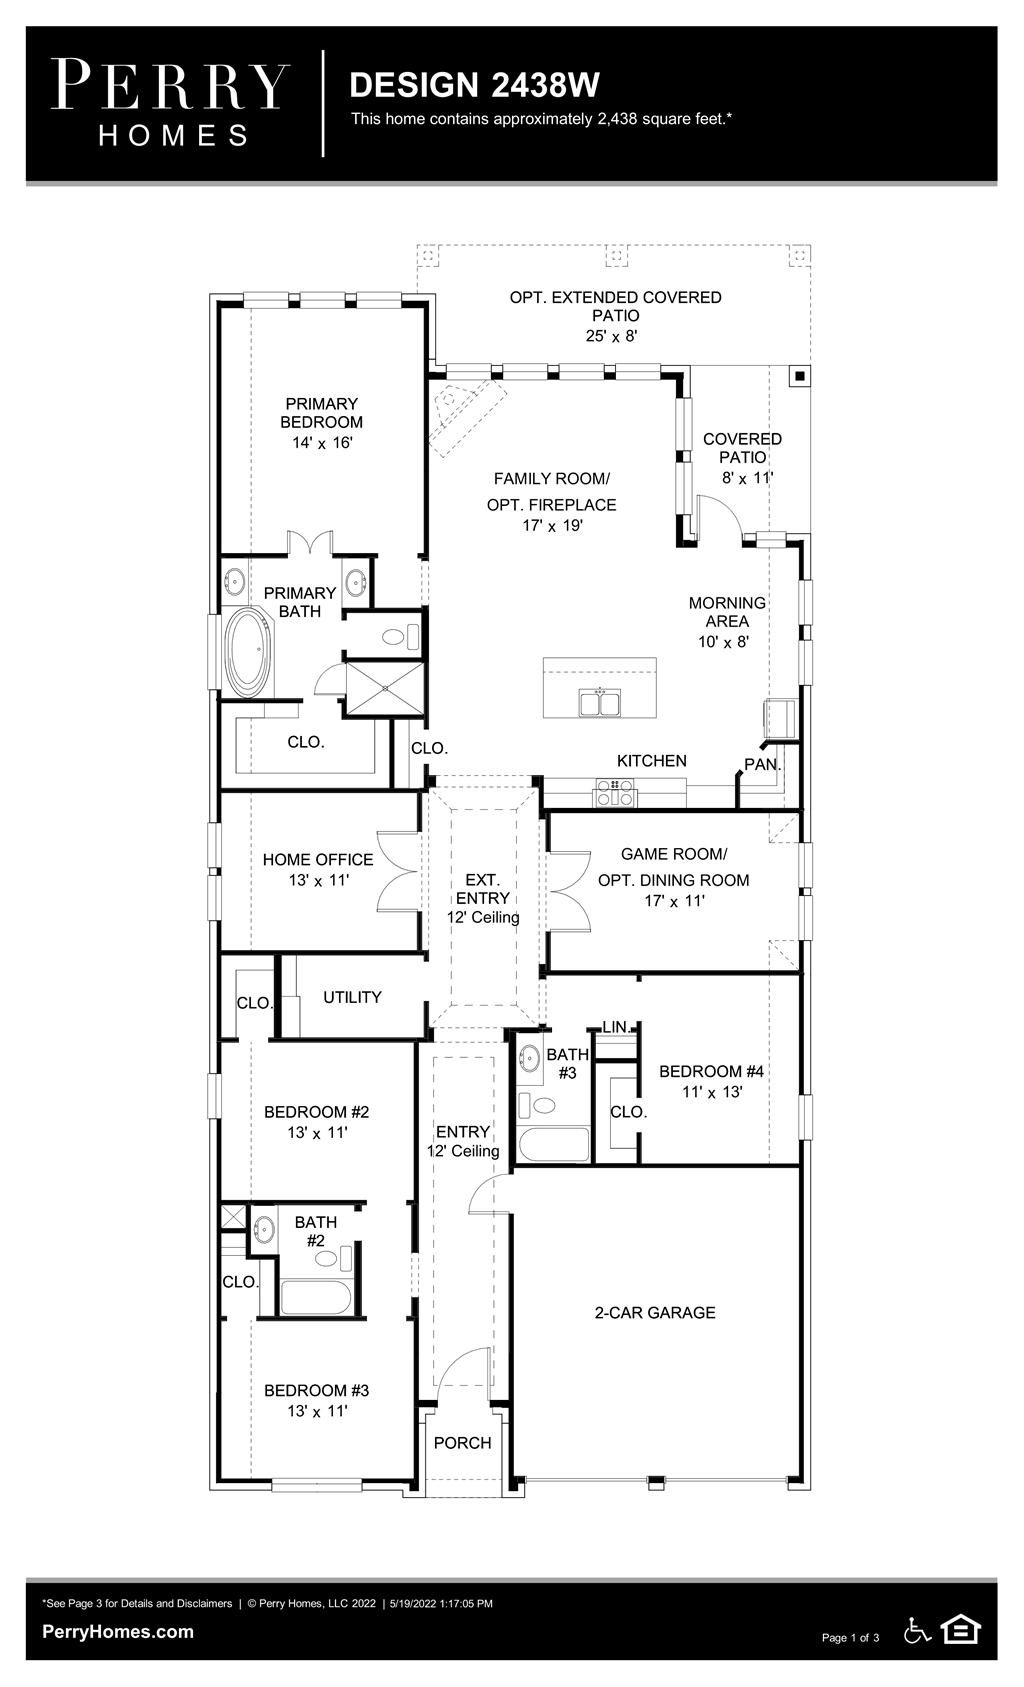 Floor Plan for 2438W